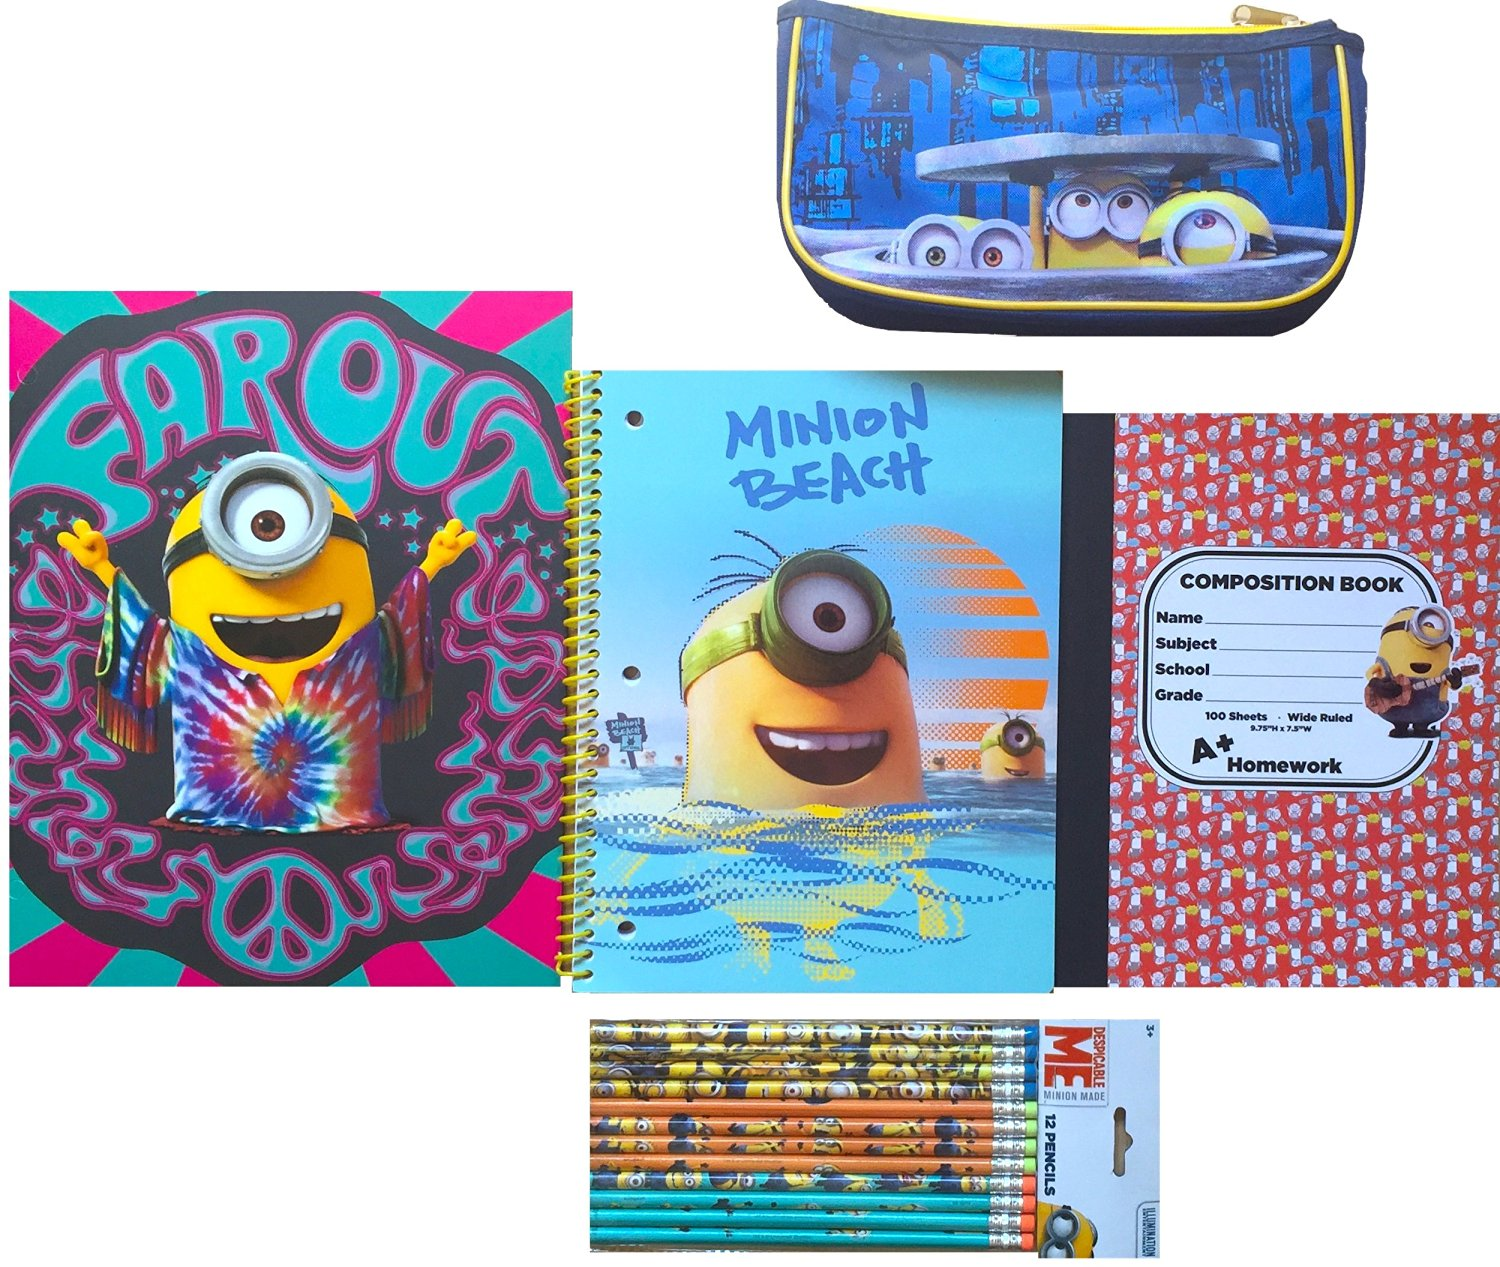 Minions Movie Exclusive Back to School Set Includes Minions Folder and Minions Spiral Notebook, Minions Composition Book with Minion Pencils and Minion Pencil Case